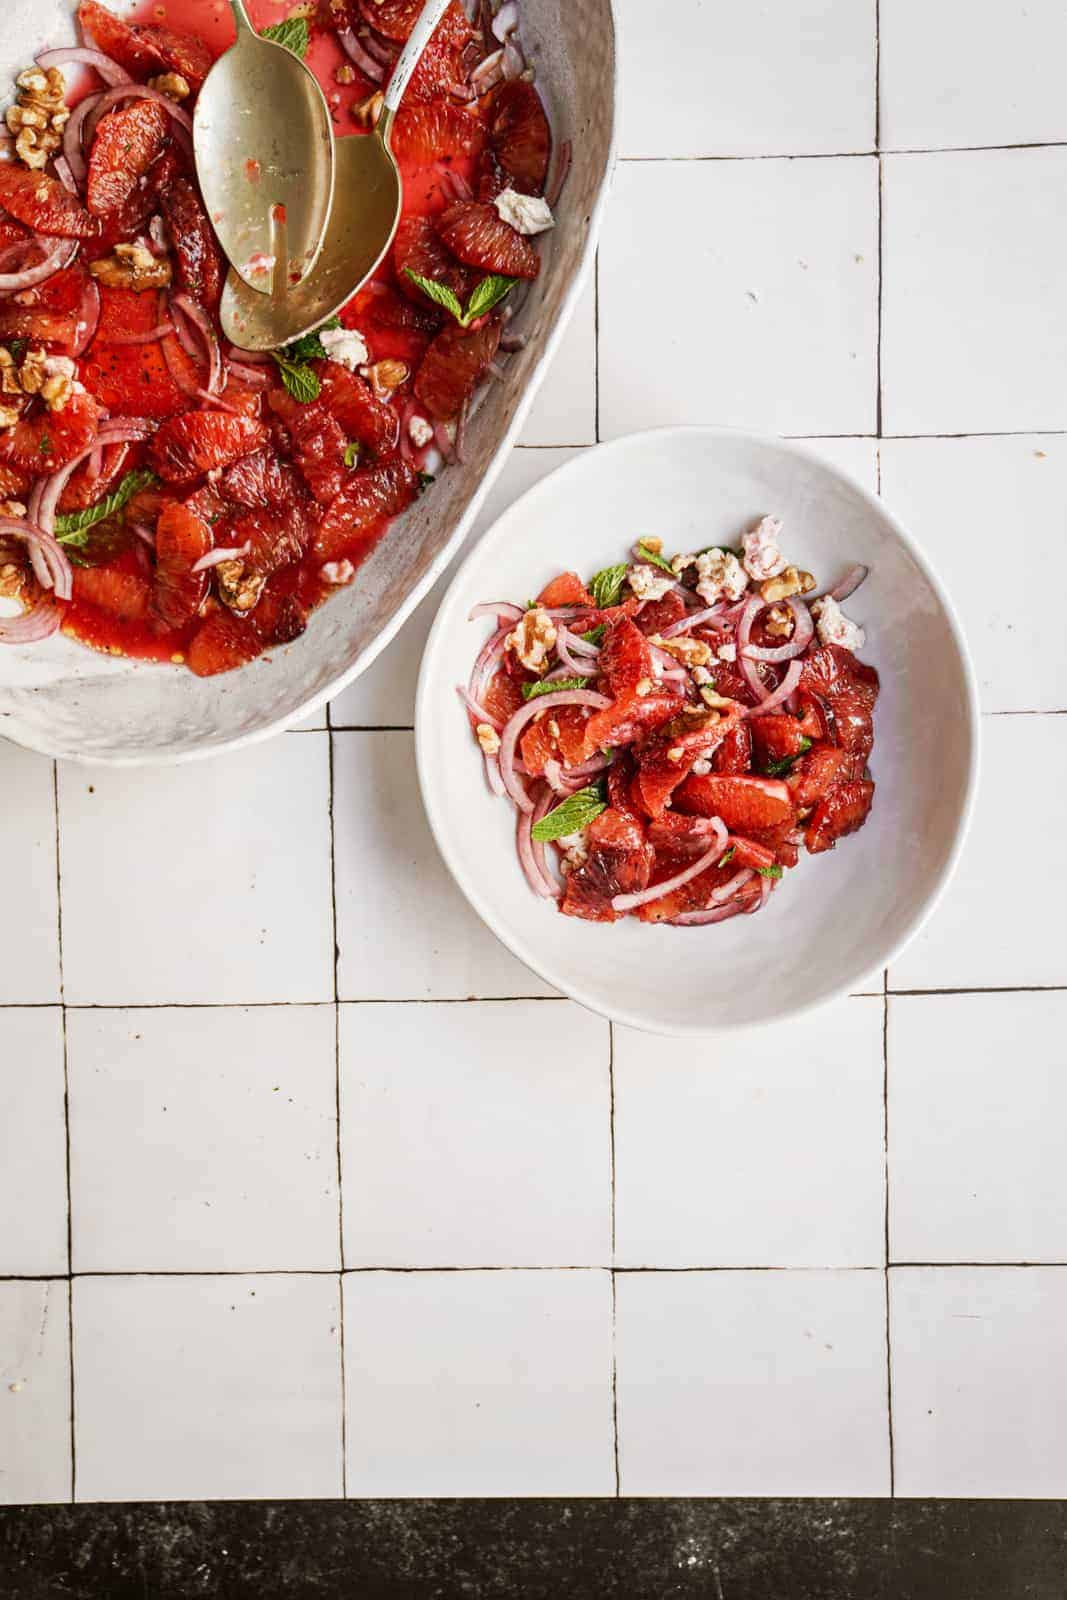 Blood orange salad on white countertop in a serving dish